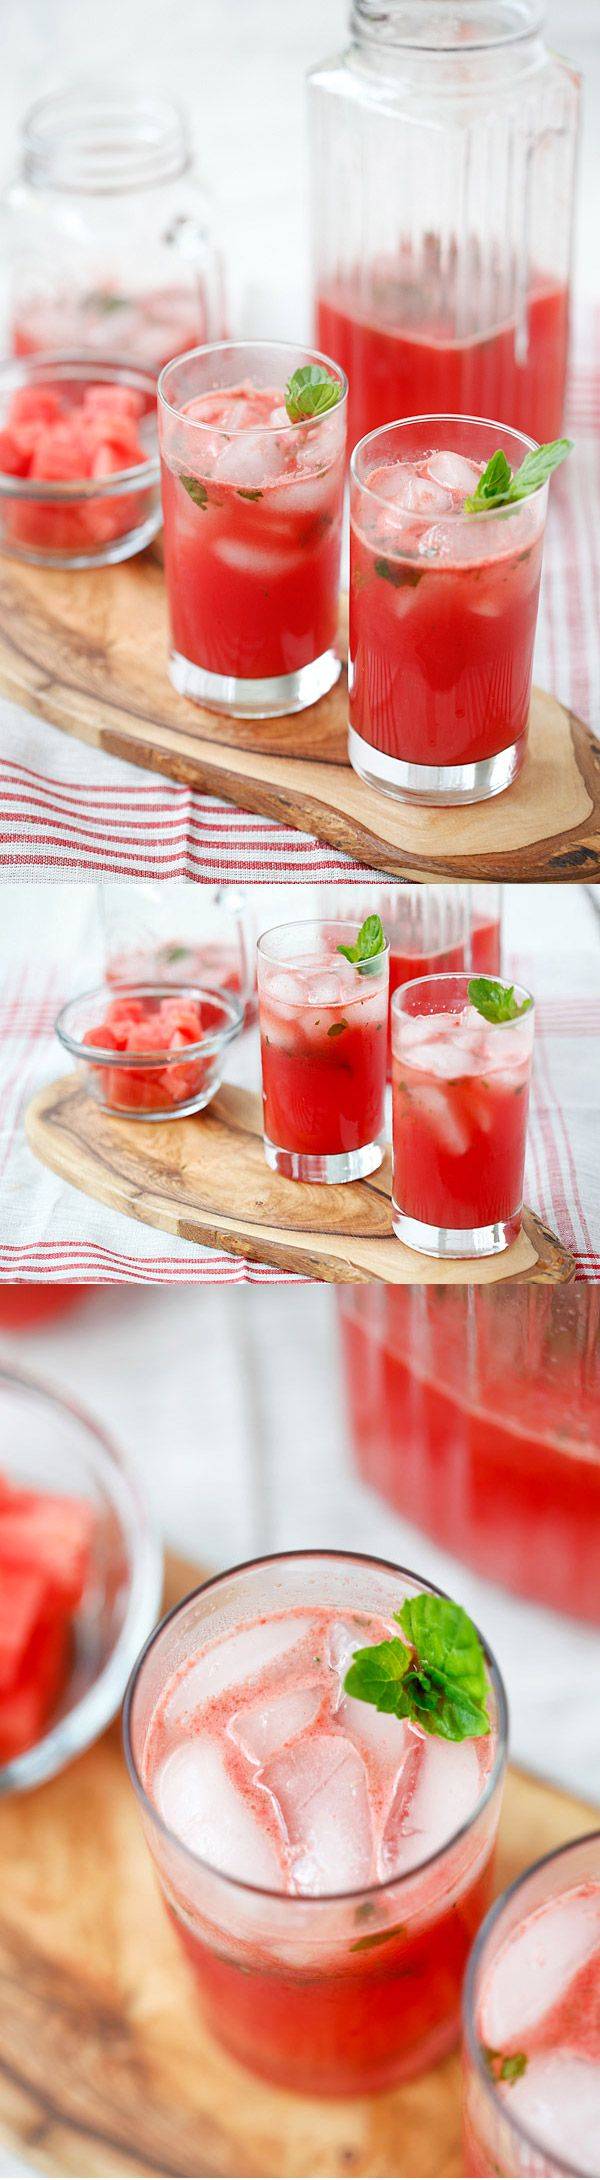 Watermelon-Tequila Cocktail – refreshing and amazing cocktail recipe with fresh watermelon, tequila, lime juice and mint, takes 15 mins | rasamalaysia.com